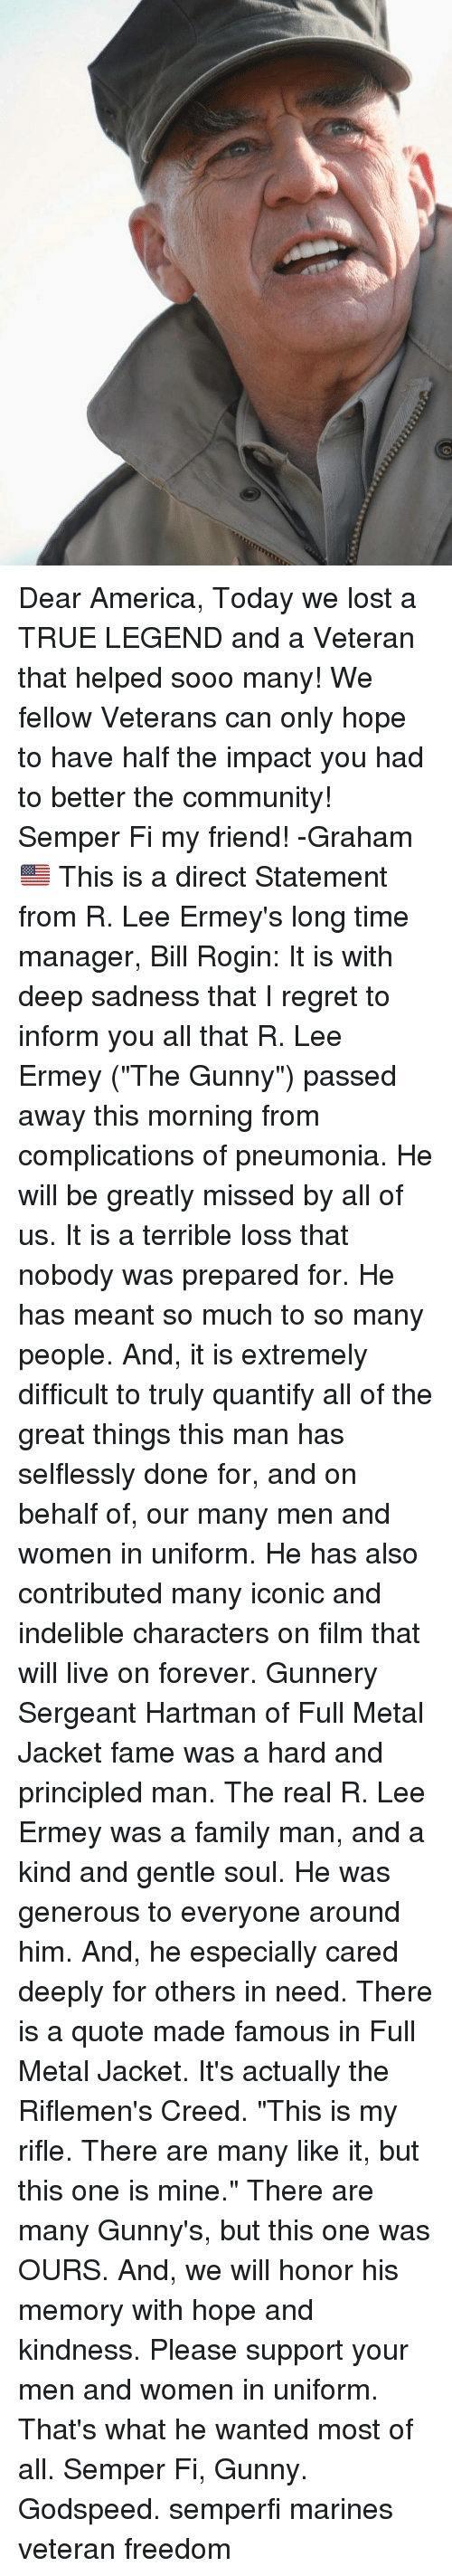 """gunny: Dear America, Today we lost a TRUE LEGEND and a Veteran that helped sooo many! We fellow Veterans can only hope to have half the impact you had to better the community! Semper Fi my friend! -Graham🇺🇸 This is a direct Statement from R. Lee Ermey's long time manager, Bill Rogin: It is with deep sadness that I regret to inform you all that R. Lee Ermey (""""The Gunny"""") passed away this morning from complications of pneumonia. He will be greatly missed by all of us. It is a terrible loss that nobody was prepared for. He has meant so much to so many people. And, it is extremely difficult to truly quantify all of the great things this man has selflessly done for, and on behalf of, our many men and women in uniform. He has also contributed many iconic and indelible characters on film that will live on forever. Gunnery Sergeant Hartman of Full Metal Jacket fame was a hard and principled man. The real R. Lee Ermey was a family man, and a kind and gentle soul. He was generous to everyone around him. And, he especially cared deeply for others in need. There is a quote made famous in Full Metal Jacket. It's actually the Riflemen's Creed. """"This is my rifle. There are many like it, but this one is mine."""" There are many Gunny's, but this one was OURS. And, we will honor his memory with hope and kindness. Please support your men and women in uniform. That's what he wanted most of all. Semper Fi, Gunny. Godspeed. semperfi marines veteran freedom"""